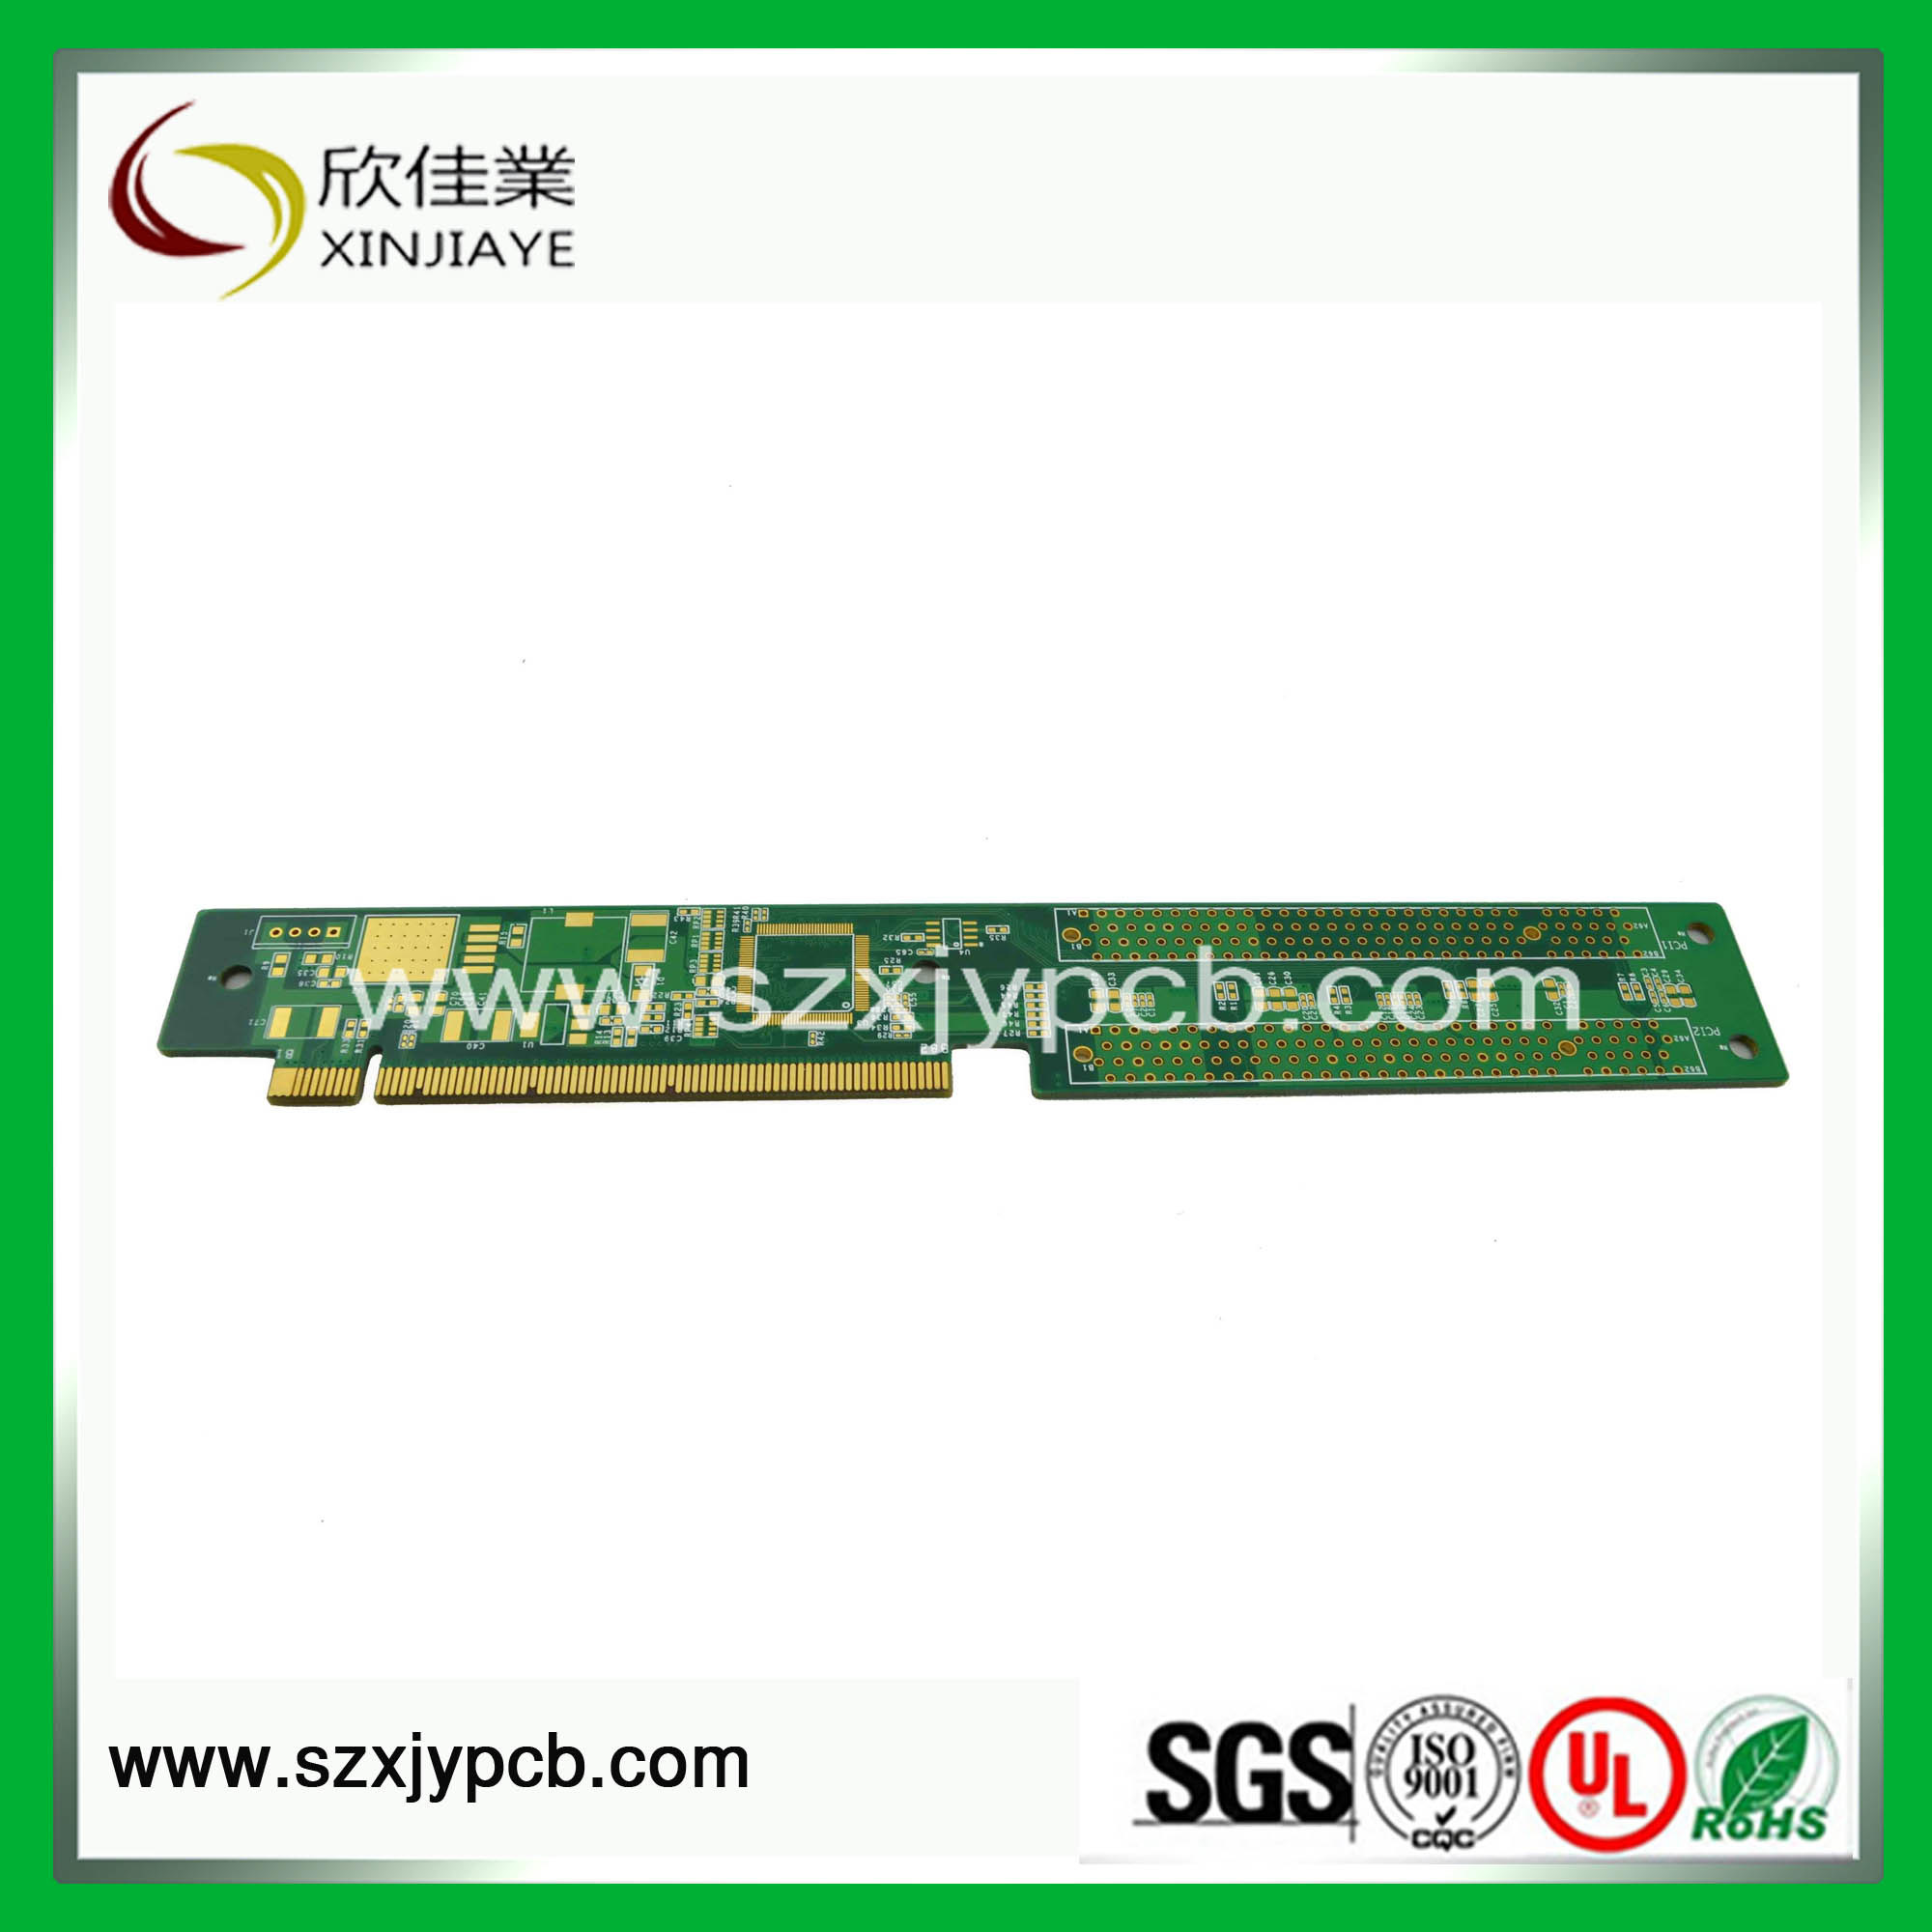 Chinese Xvideo Audio And Video Player Pcba For Oem China Copper Prototype Pcb Universal Boardled Printed Circuit Board